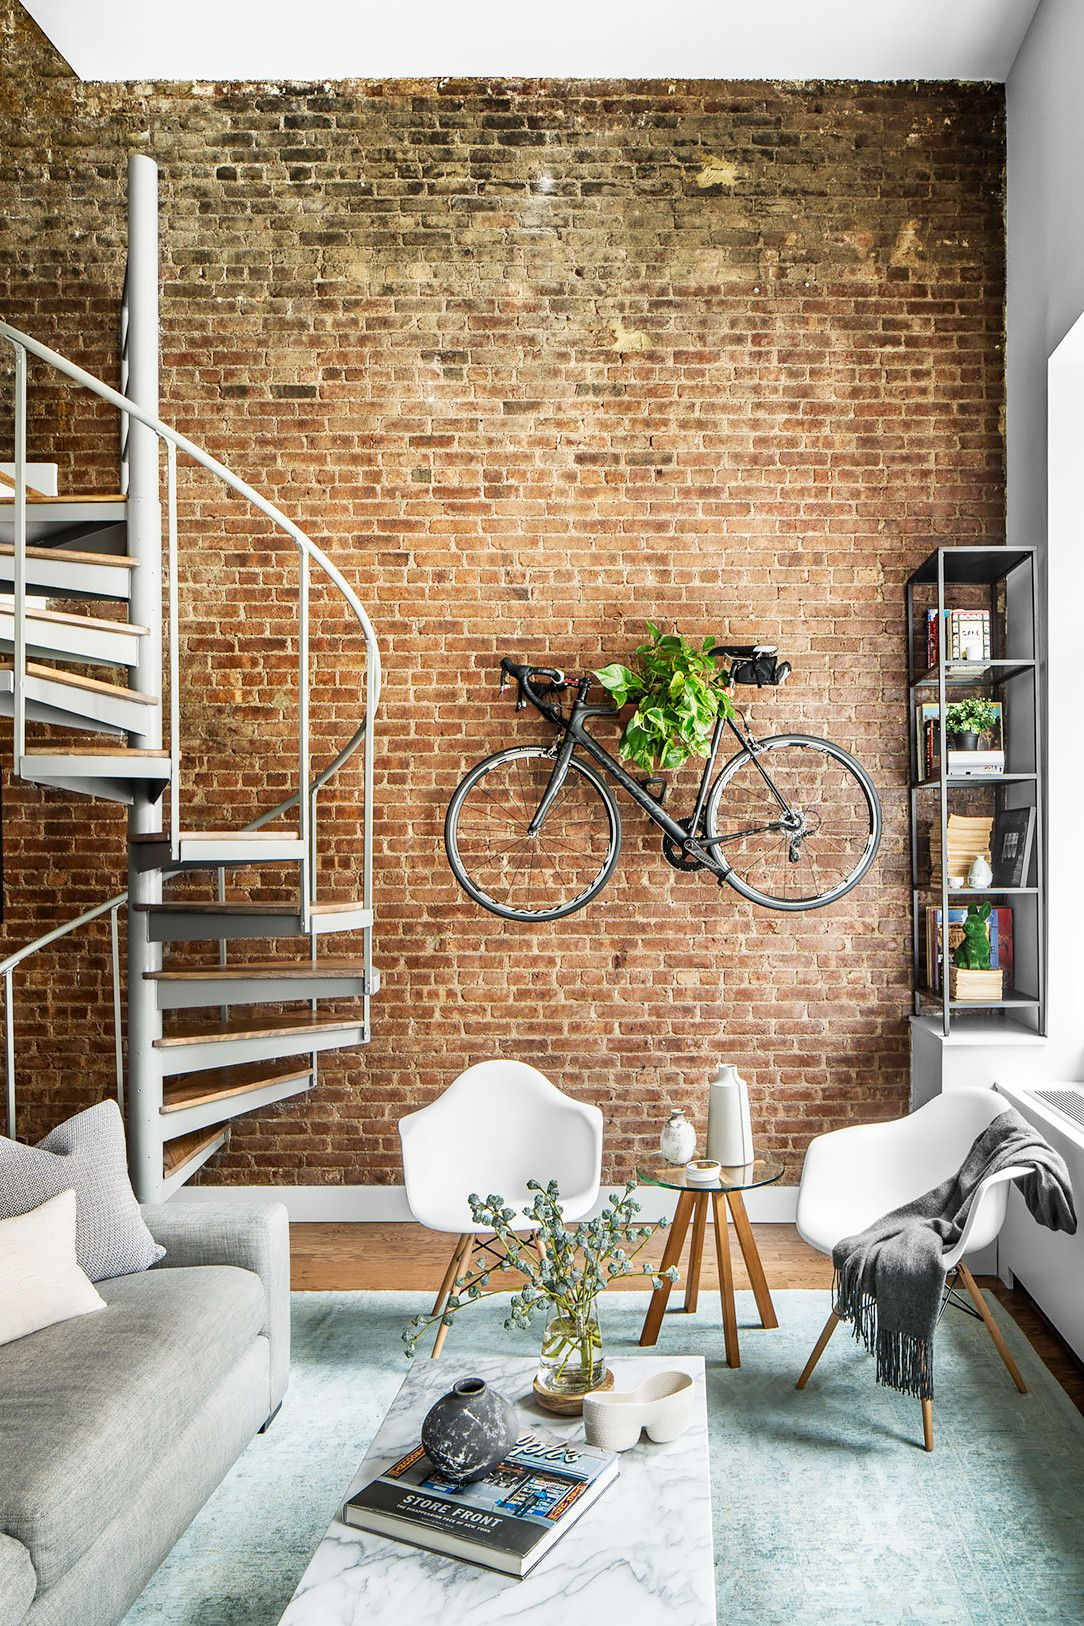 Inside A New York Bacheloru0027s Elevated And Edgy NoHo Loft. Exposed Brick  ApartmentIndustrial ...